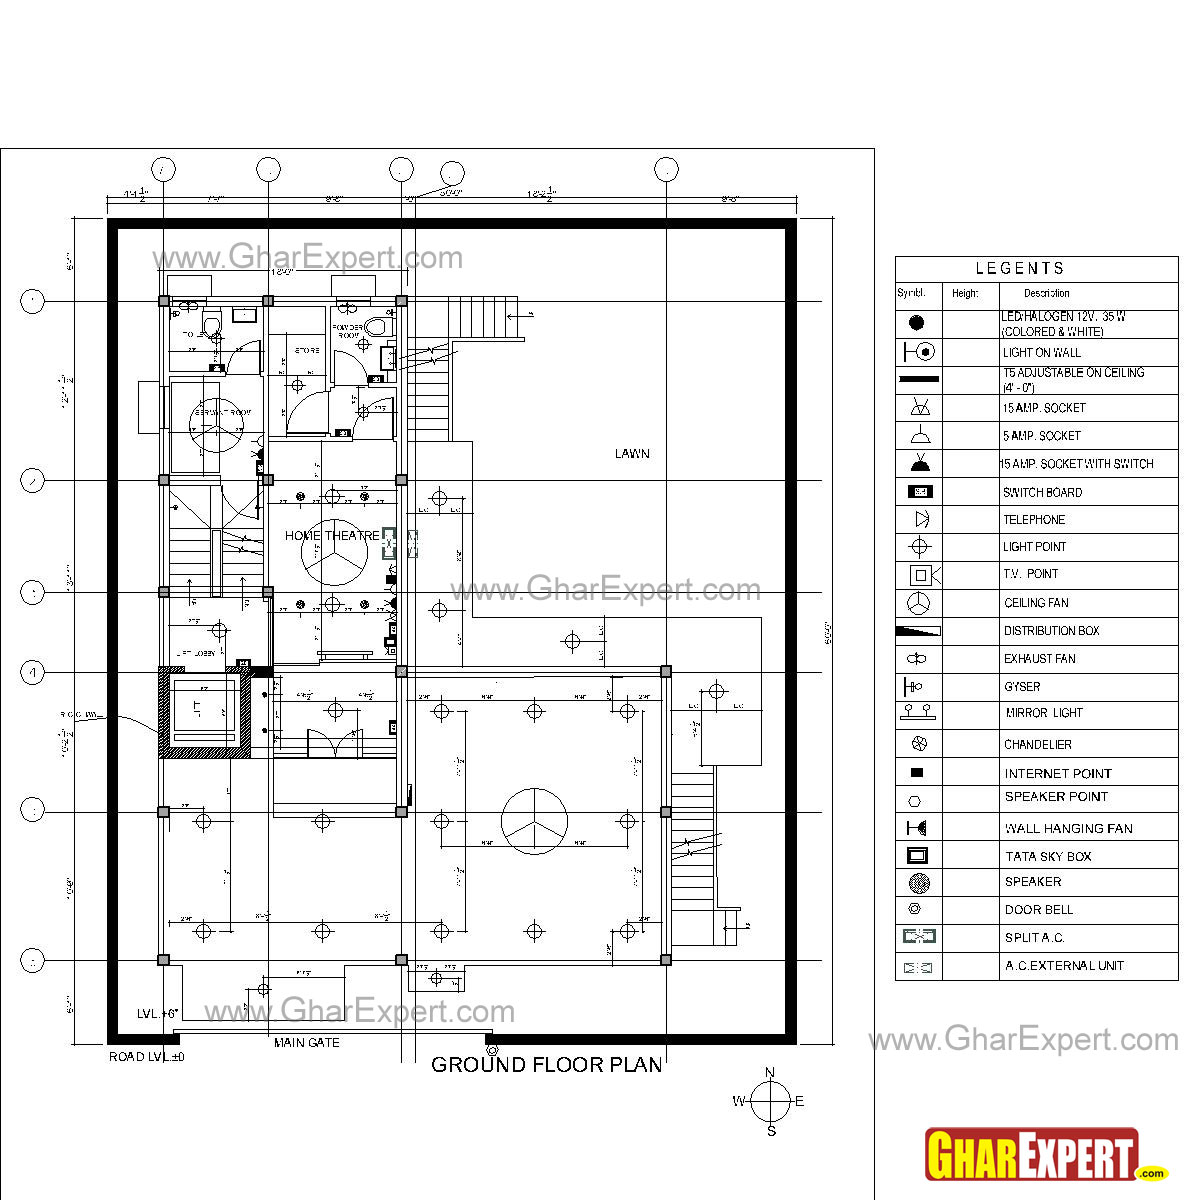 Sample Architectural Structure Plumbing And Electrical Drawings Drawing Approval